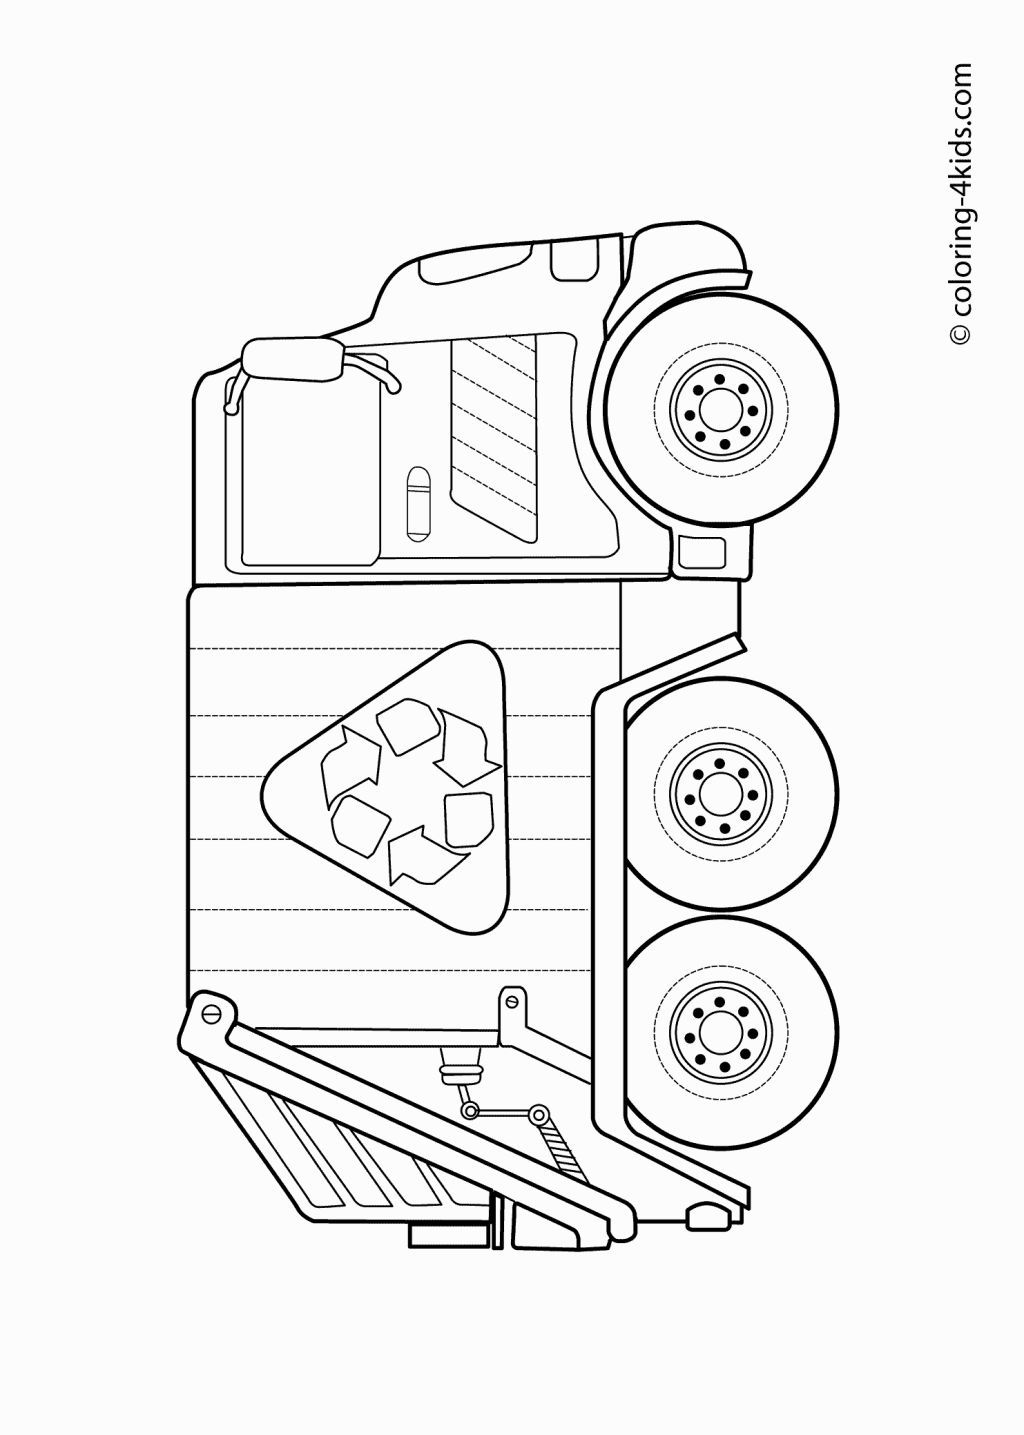 Printable coloring pages recycling - Garbage Truck Transportation Coloring Pages For Kids Printable Free